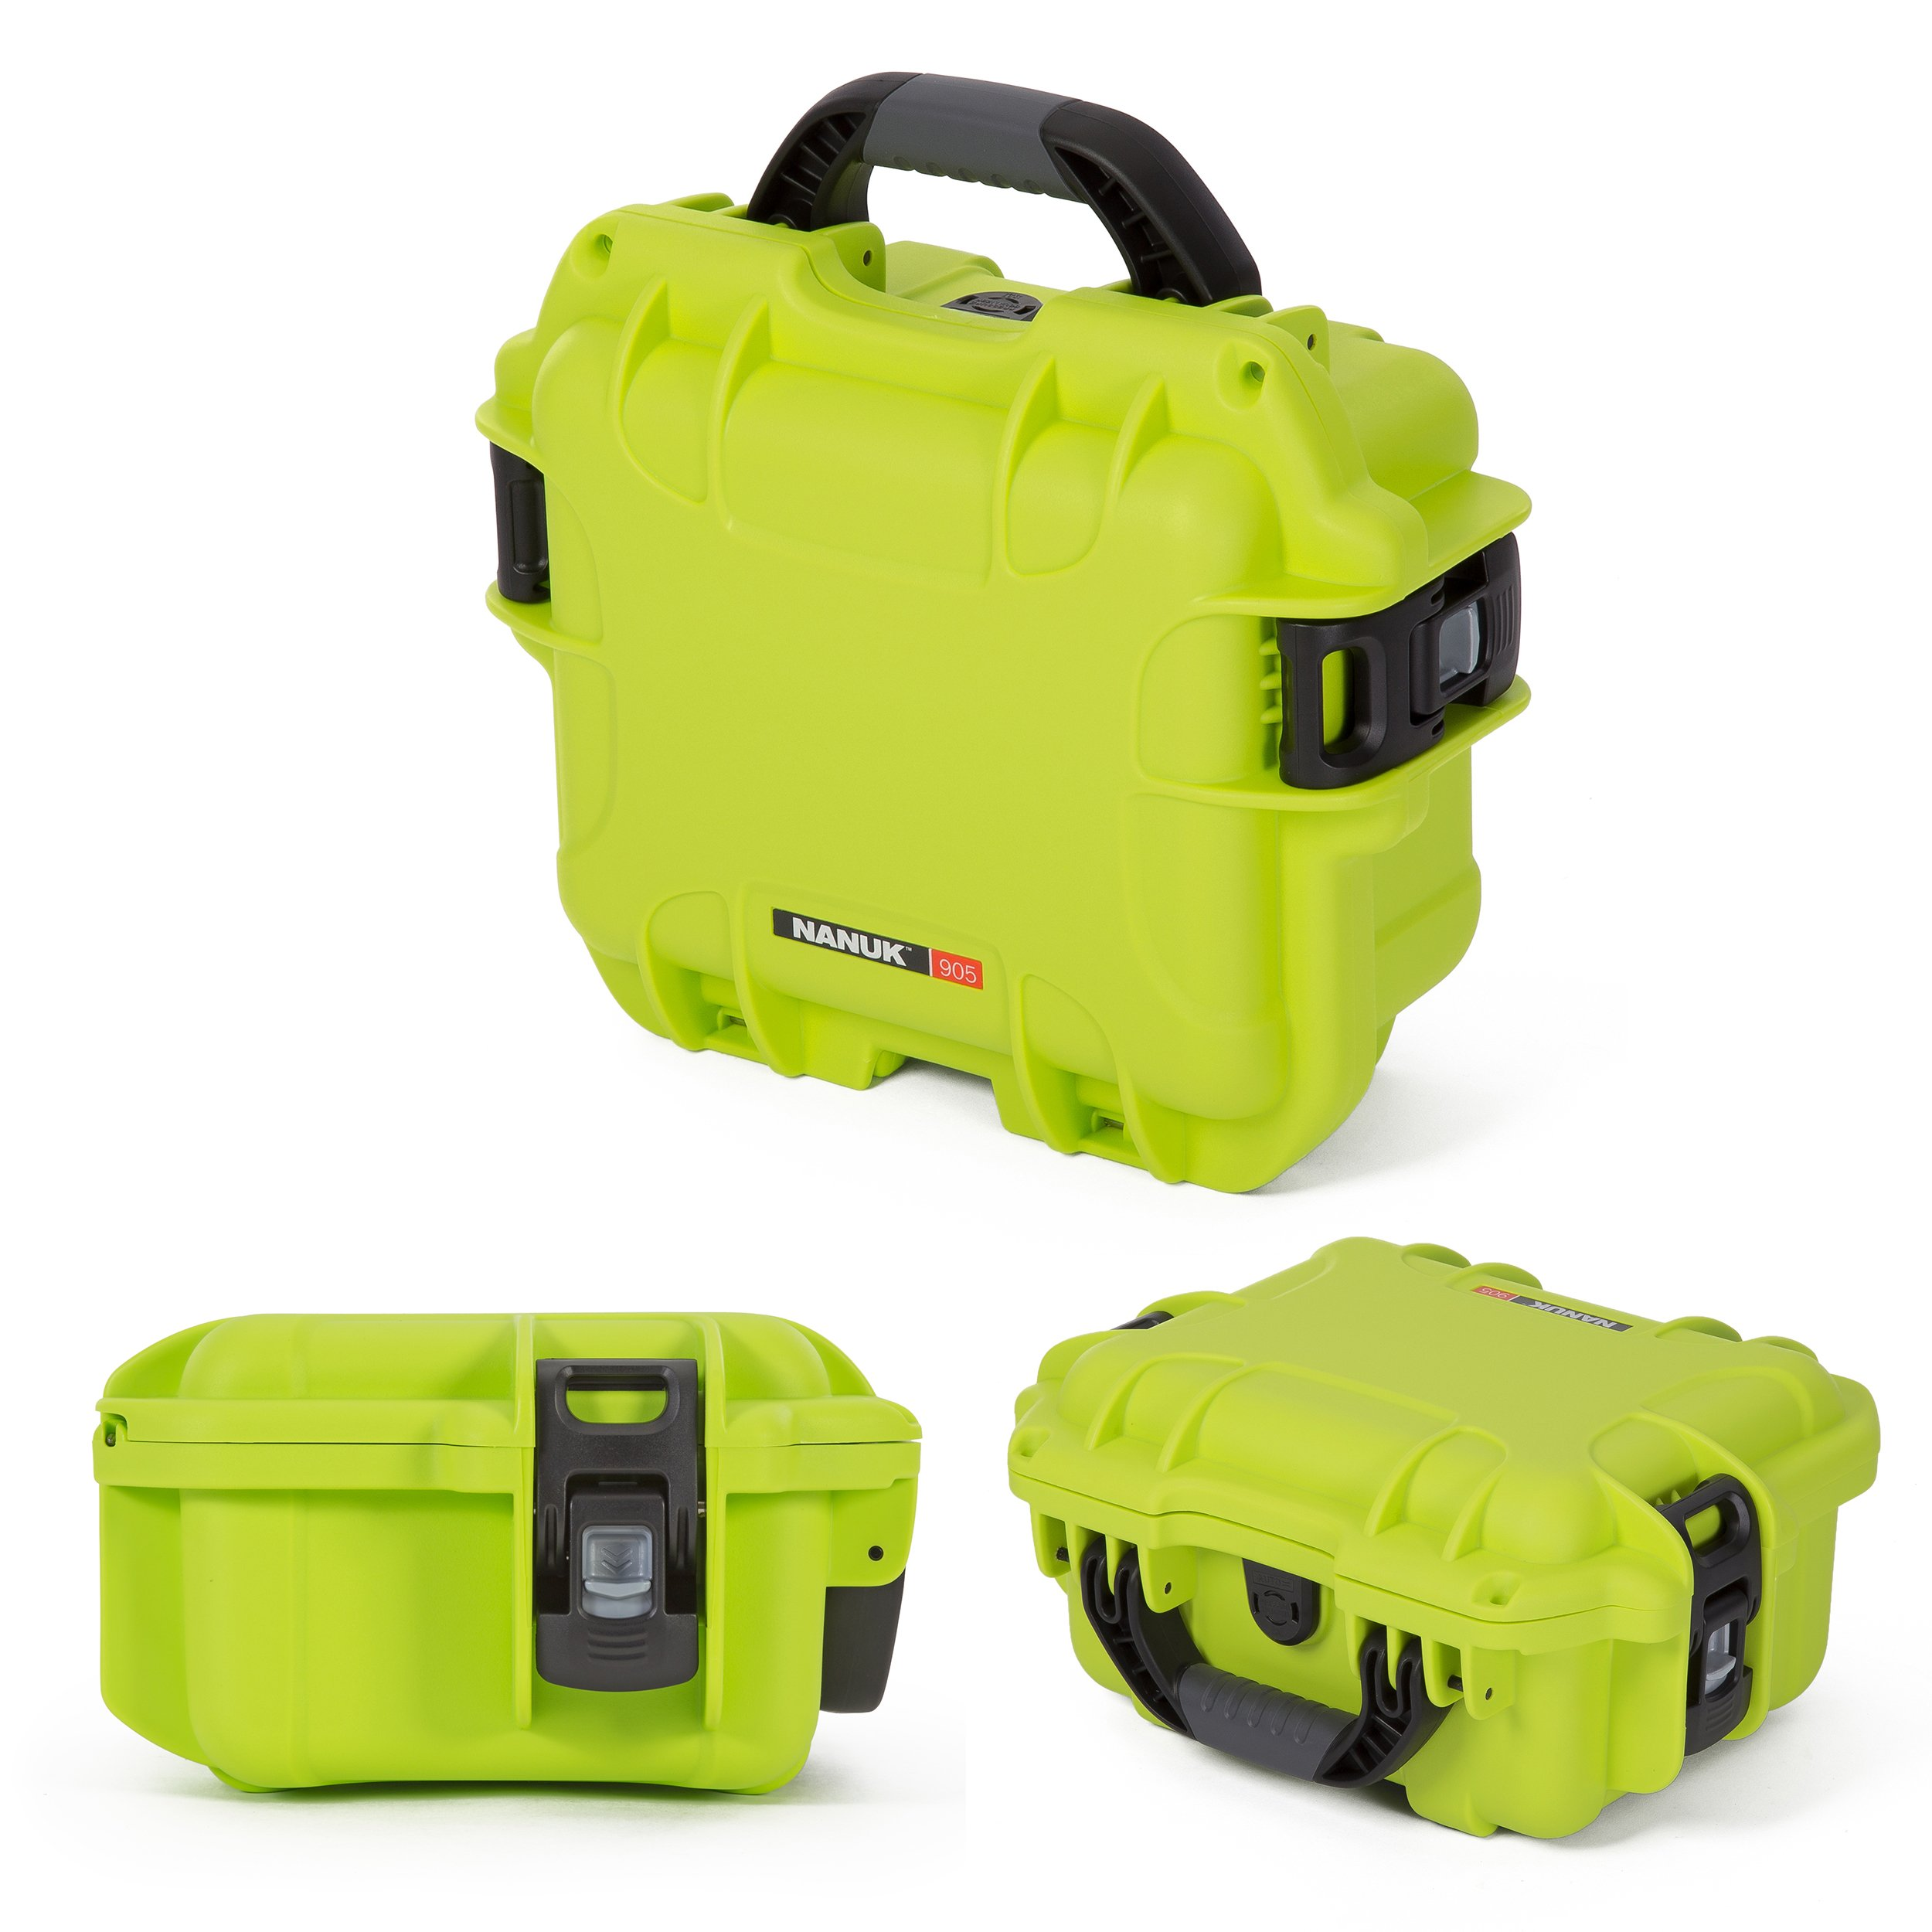 Nanuk 905 Waterproof Hard Case with Padded Dividers - Lime by Nanuk (Image #3)